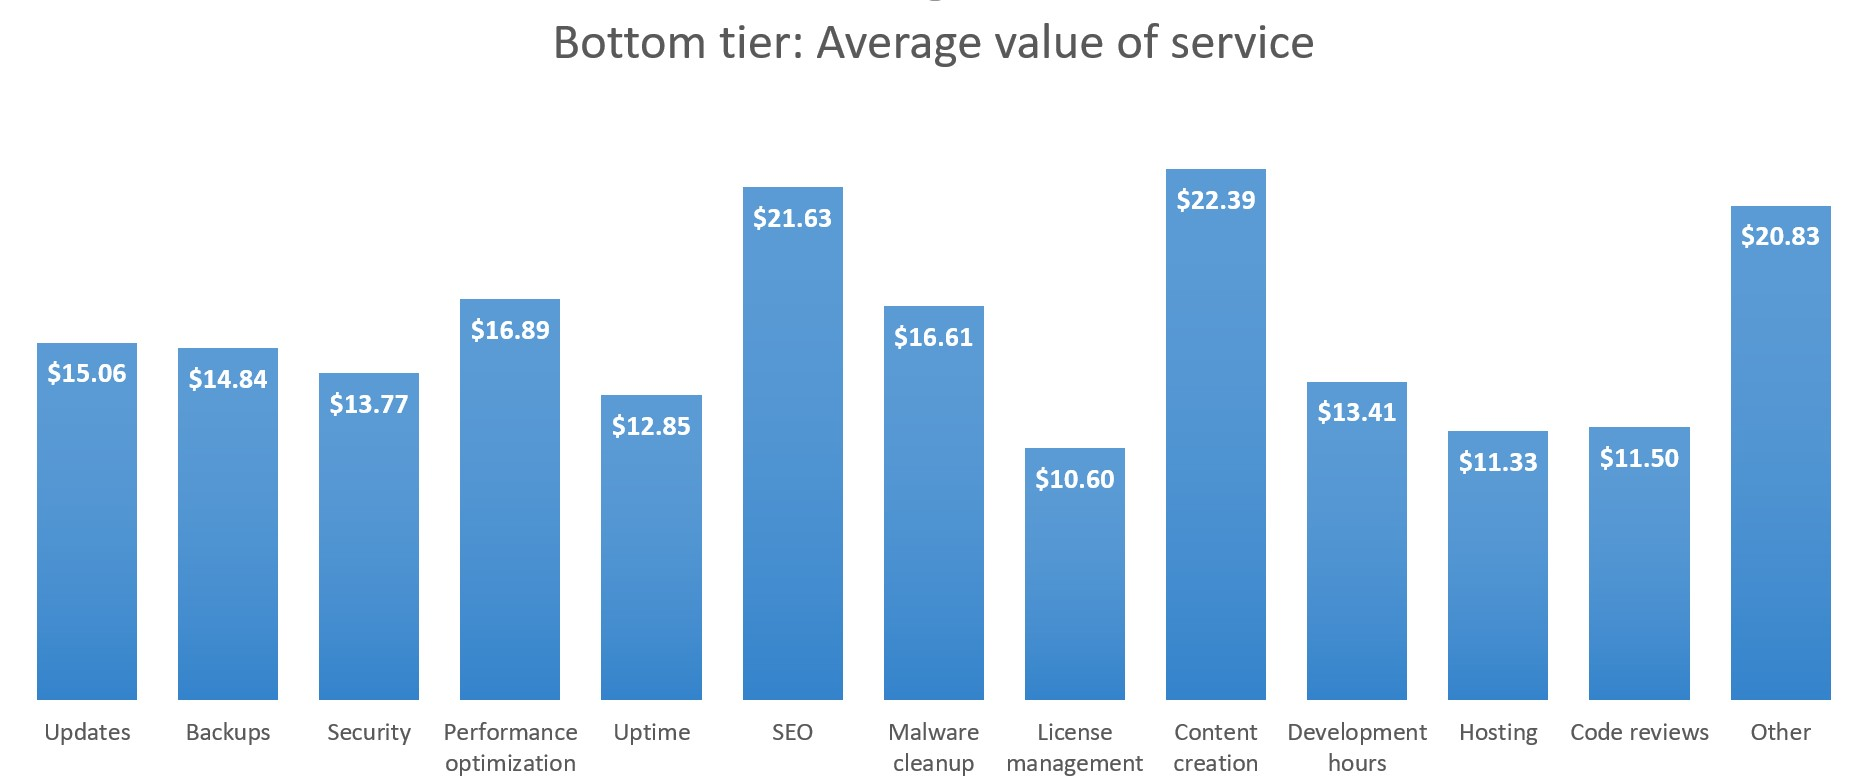 Bottom tier: Average value per service